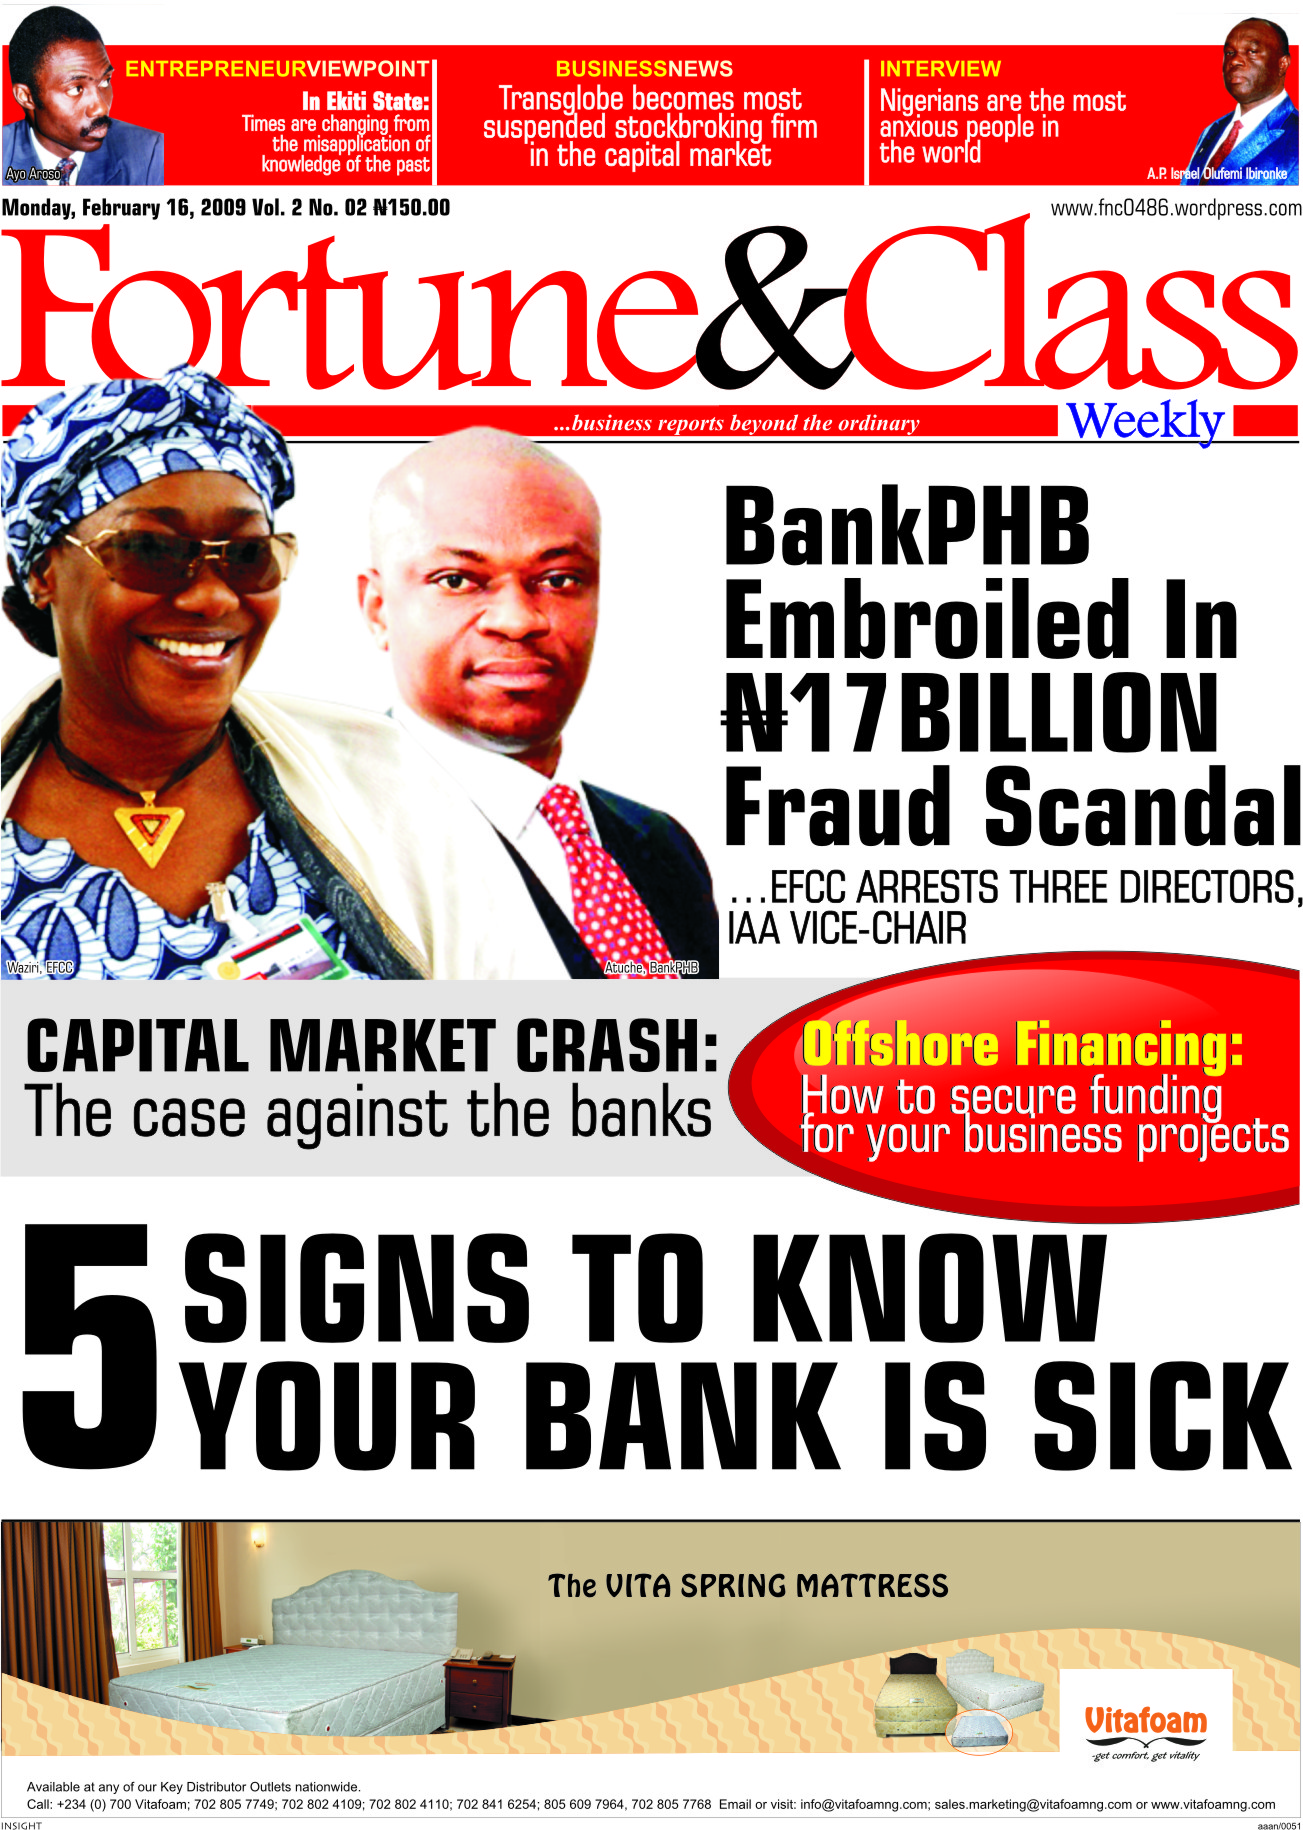 Fortune&Class Weekly